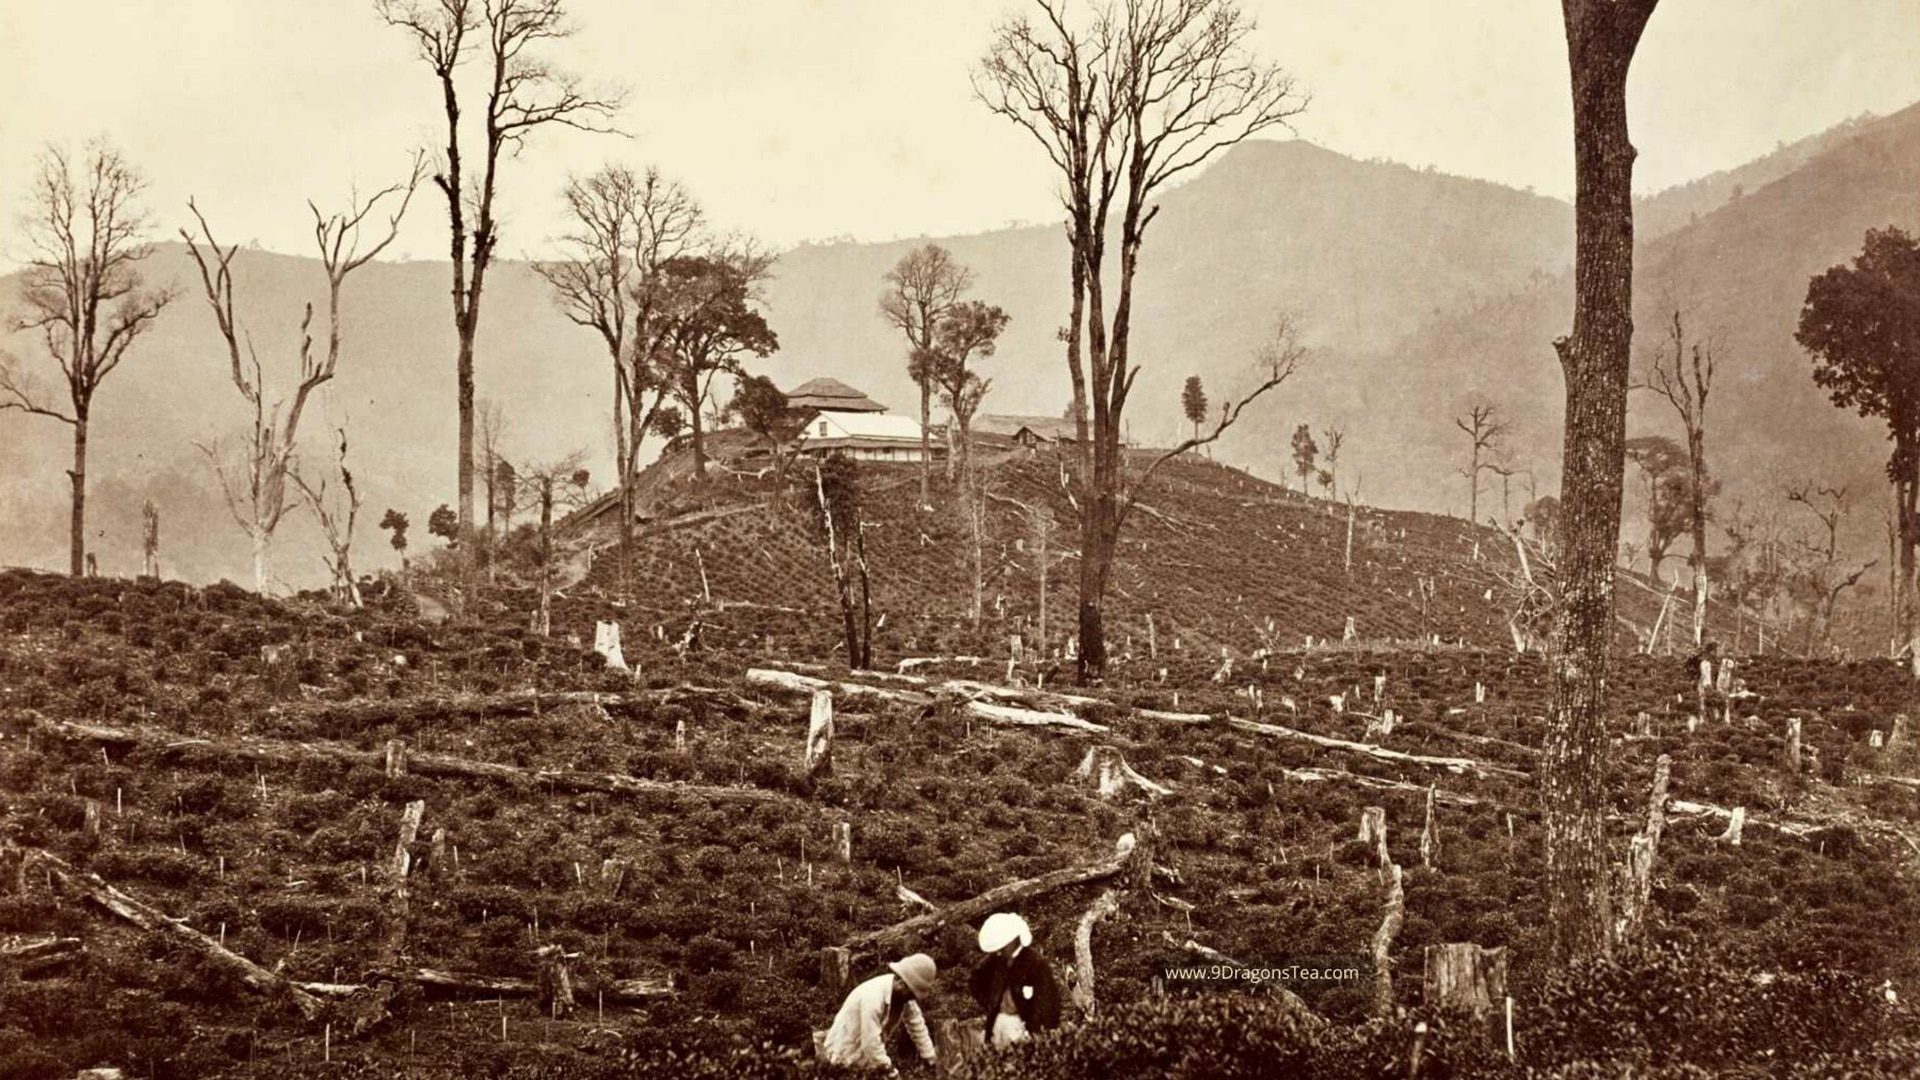 historical image How Tea Came To India Darjeeling View of the Selim Tea Estate by Samuel Bourne c1869